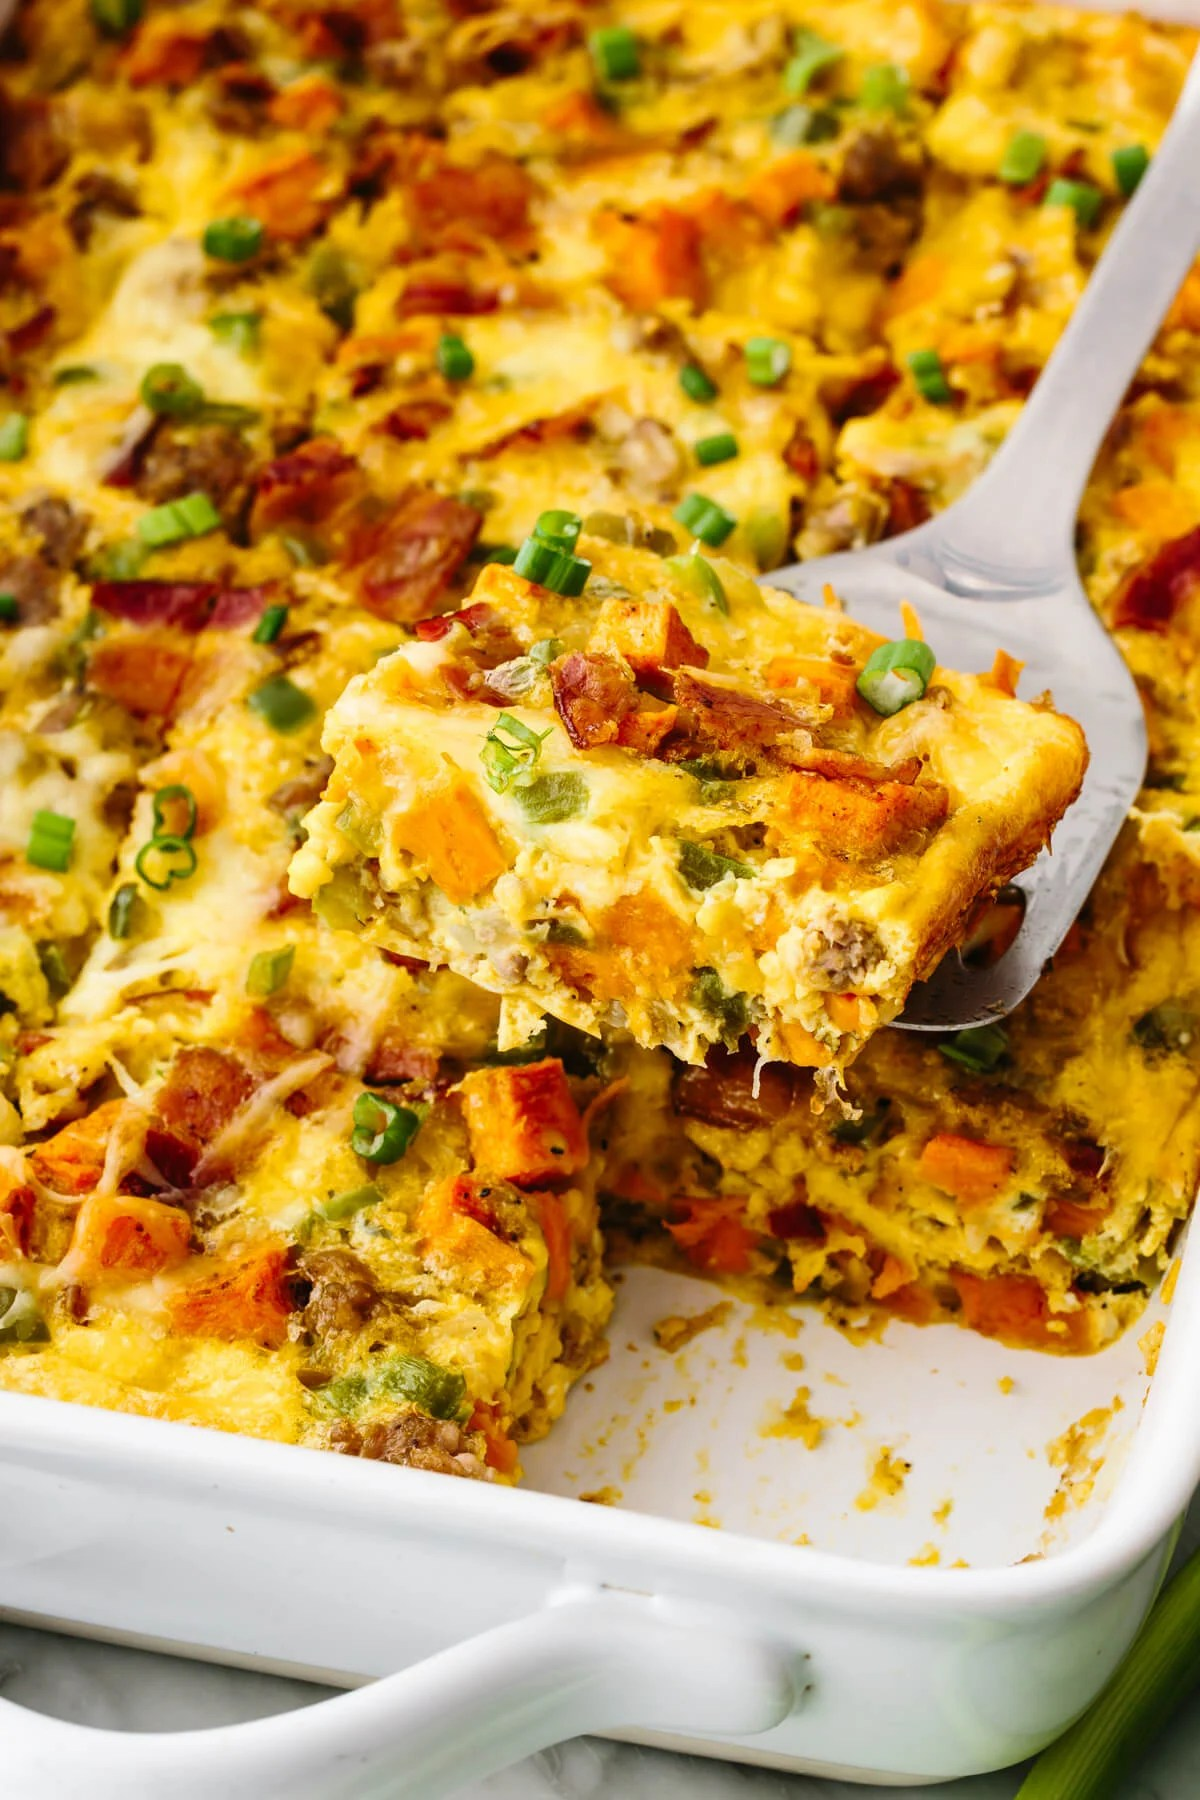 Scooping up a piece of a loaded breakfast casserole with a spatula.